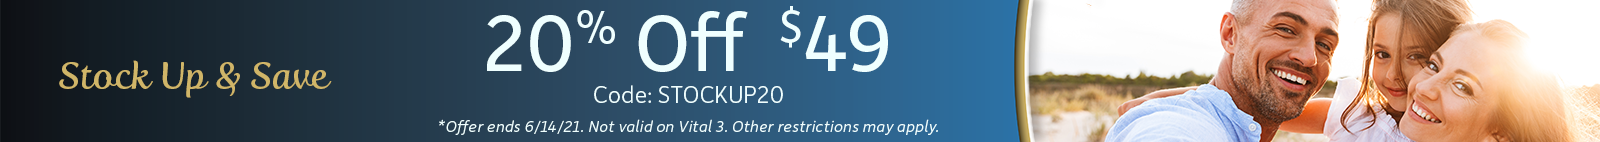 Stock up and Save! 20% off $49 - Code STOCKUP20